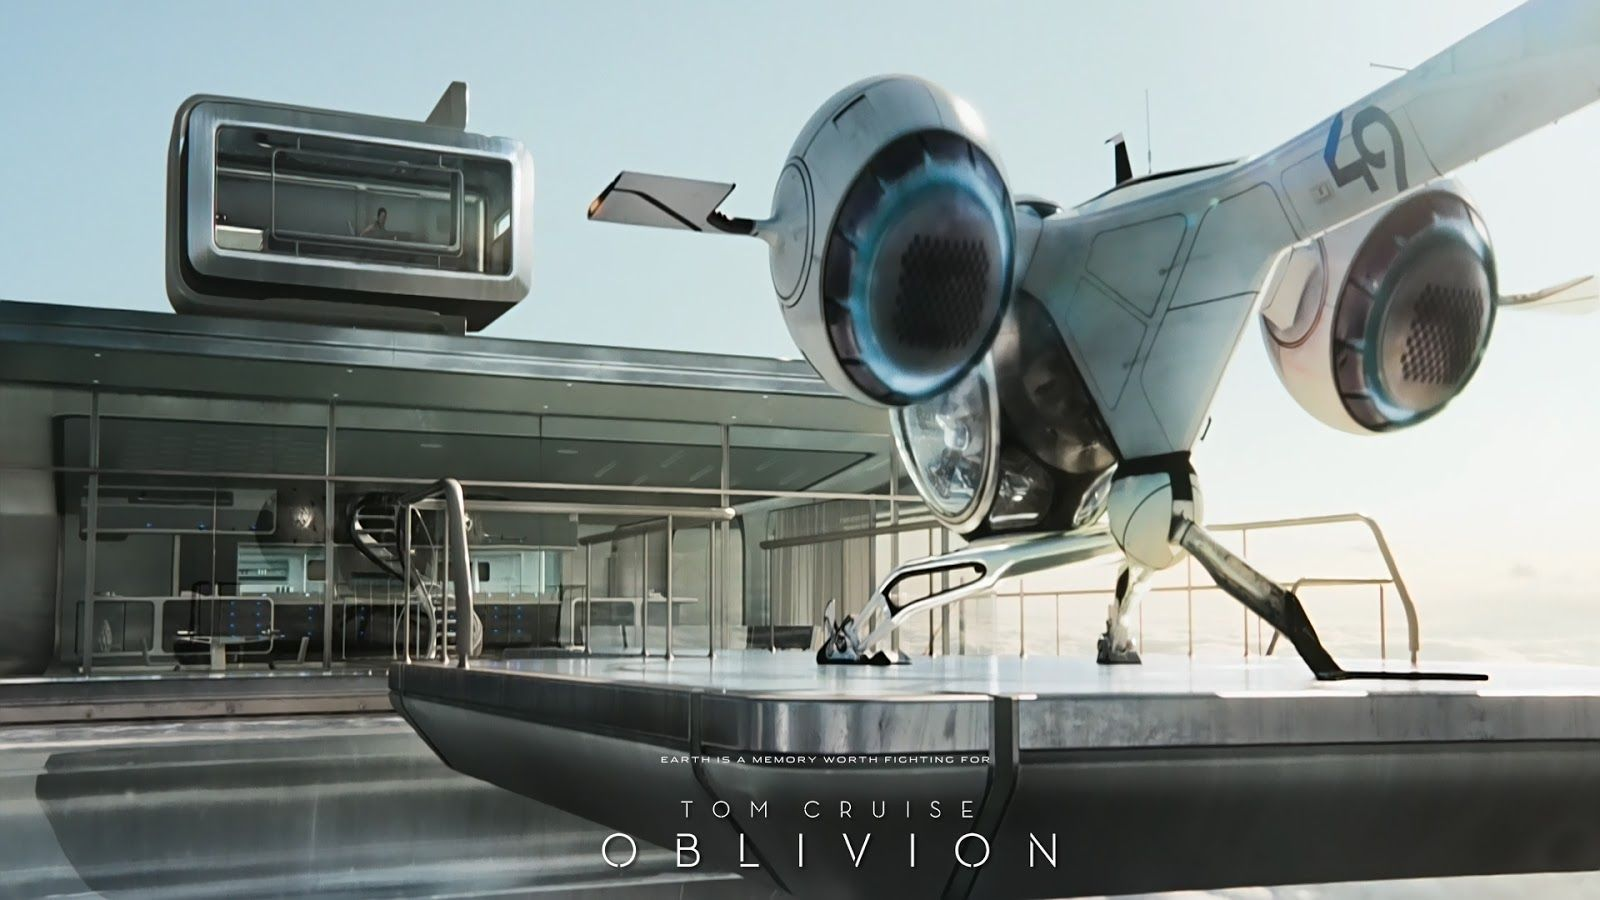 oblivion movie hi-resolution wallpapers, photos, movie stills | sci